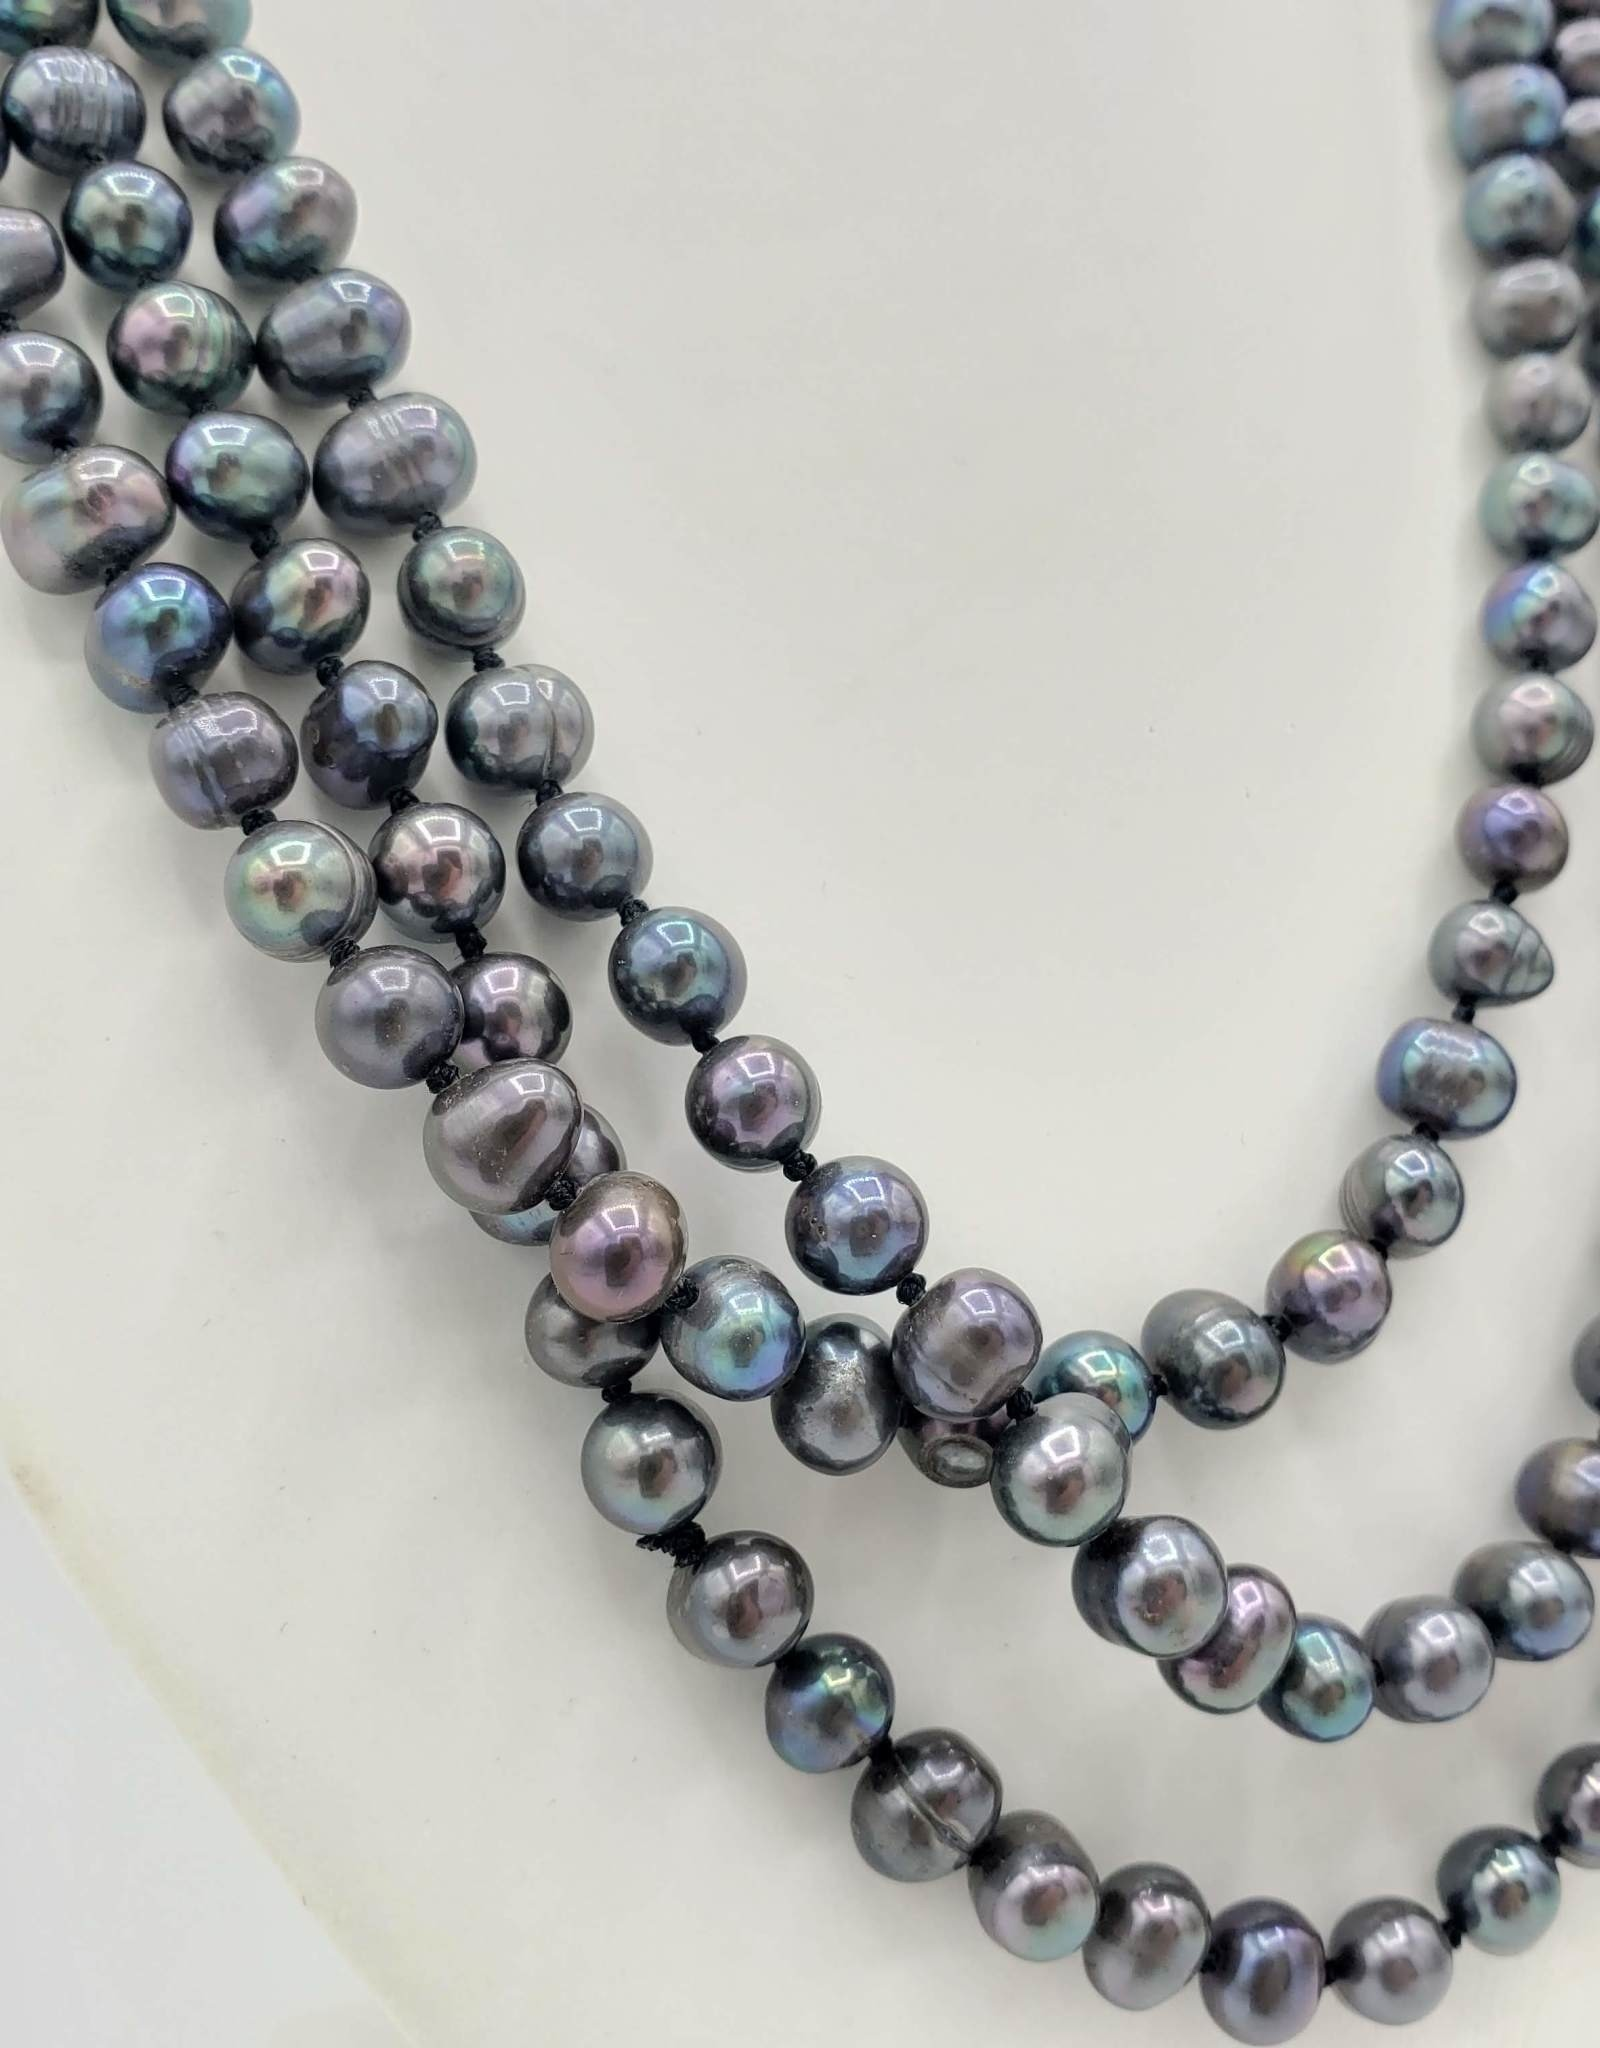 Long Strand of Peacock Freshwater Pearls Necklace